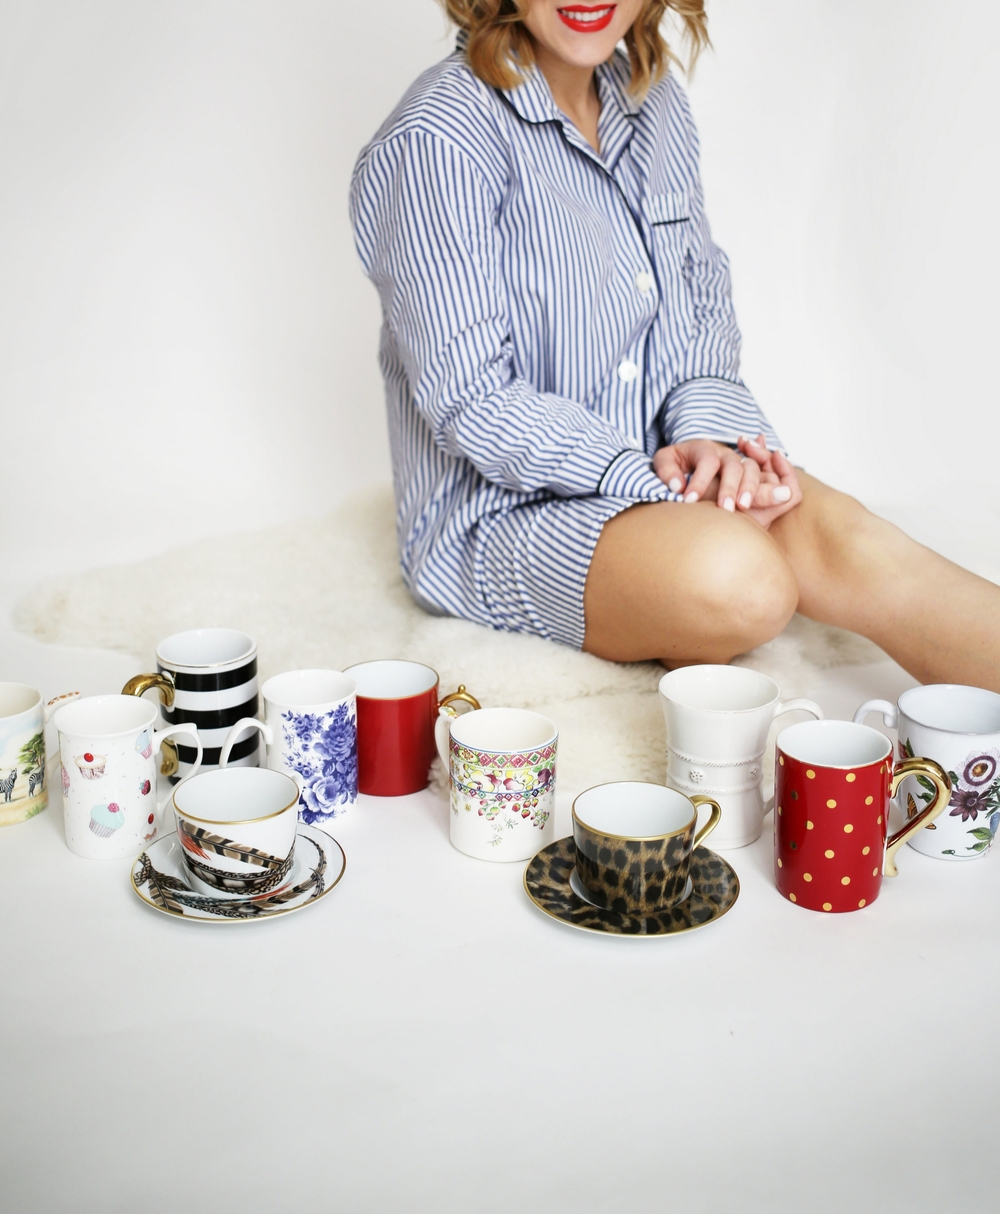 J.Crew striped pajamas and Lerant coffee cups 6.jpg